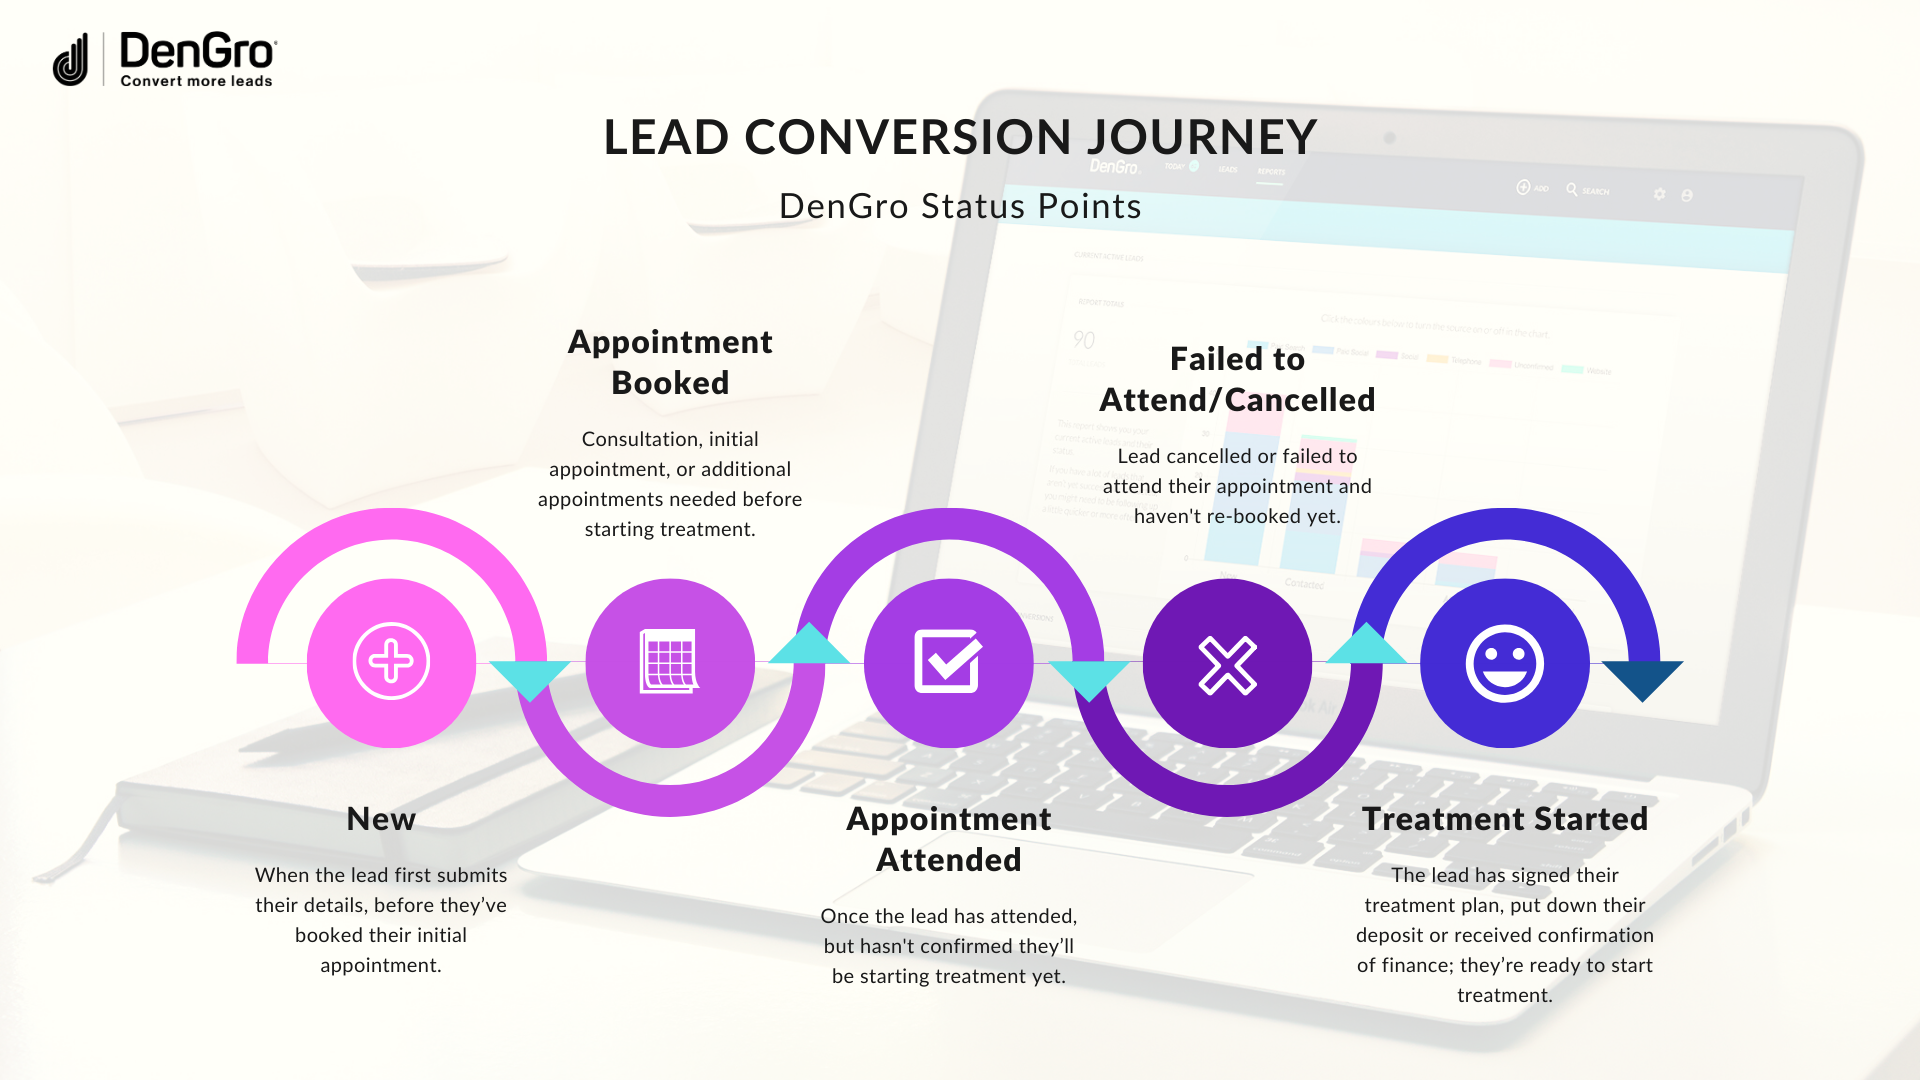 DenGro Lead Conversion Journey and Status Points